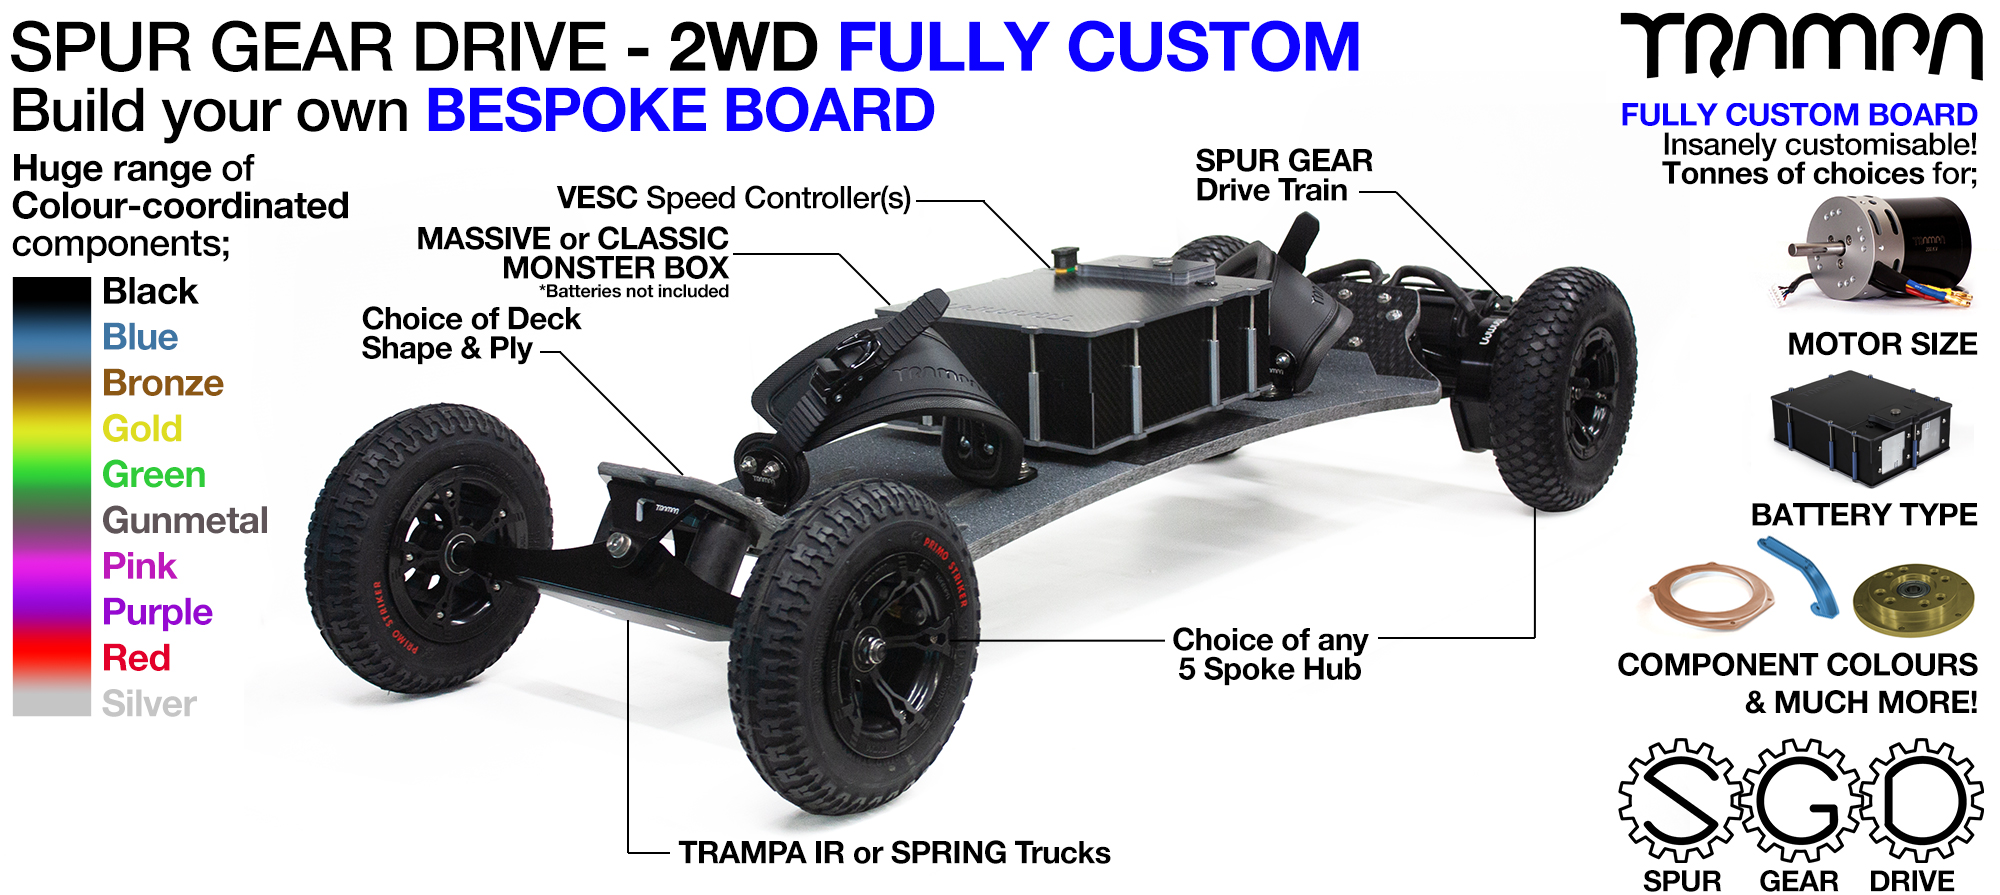 2WD SPUR GEAR DRIVE Electric Mountainboard - CUSTOM